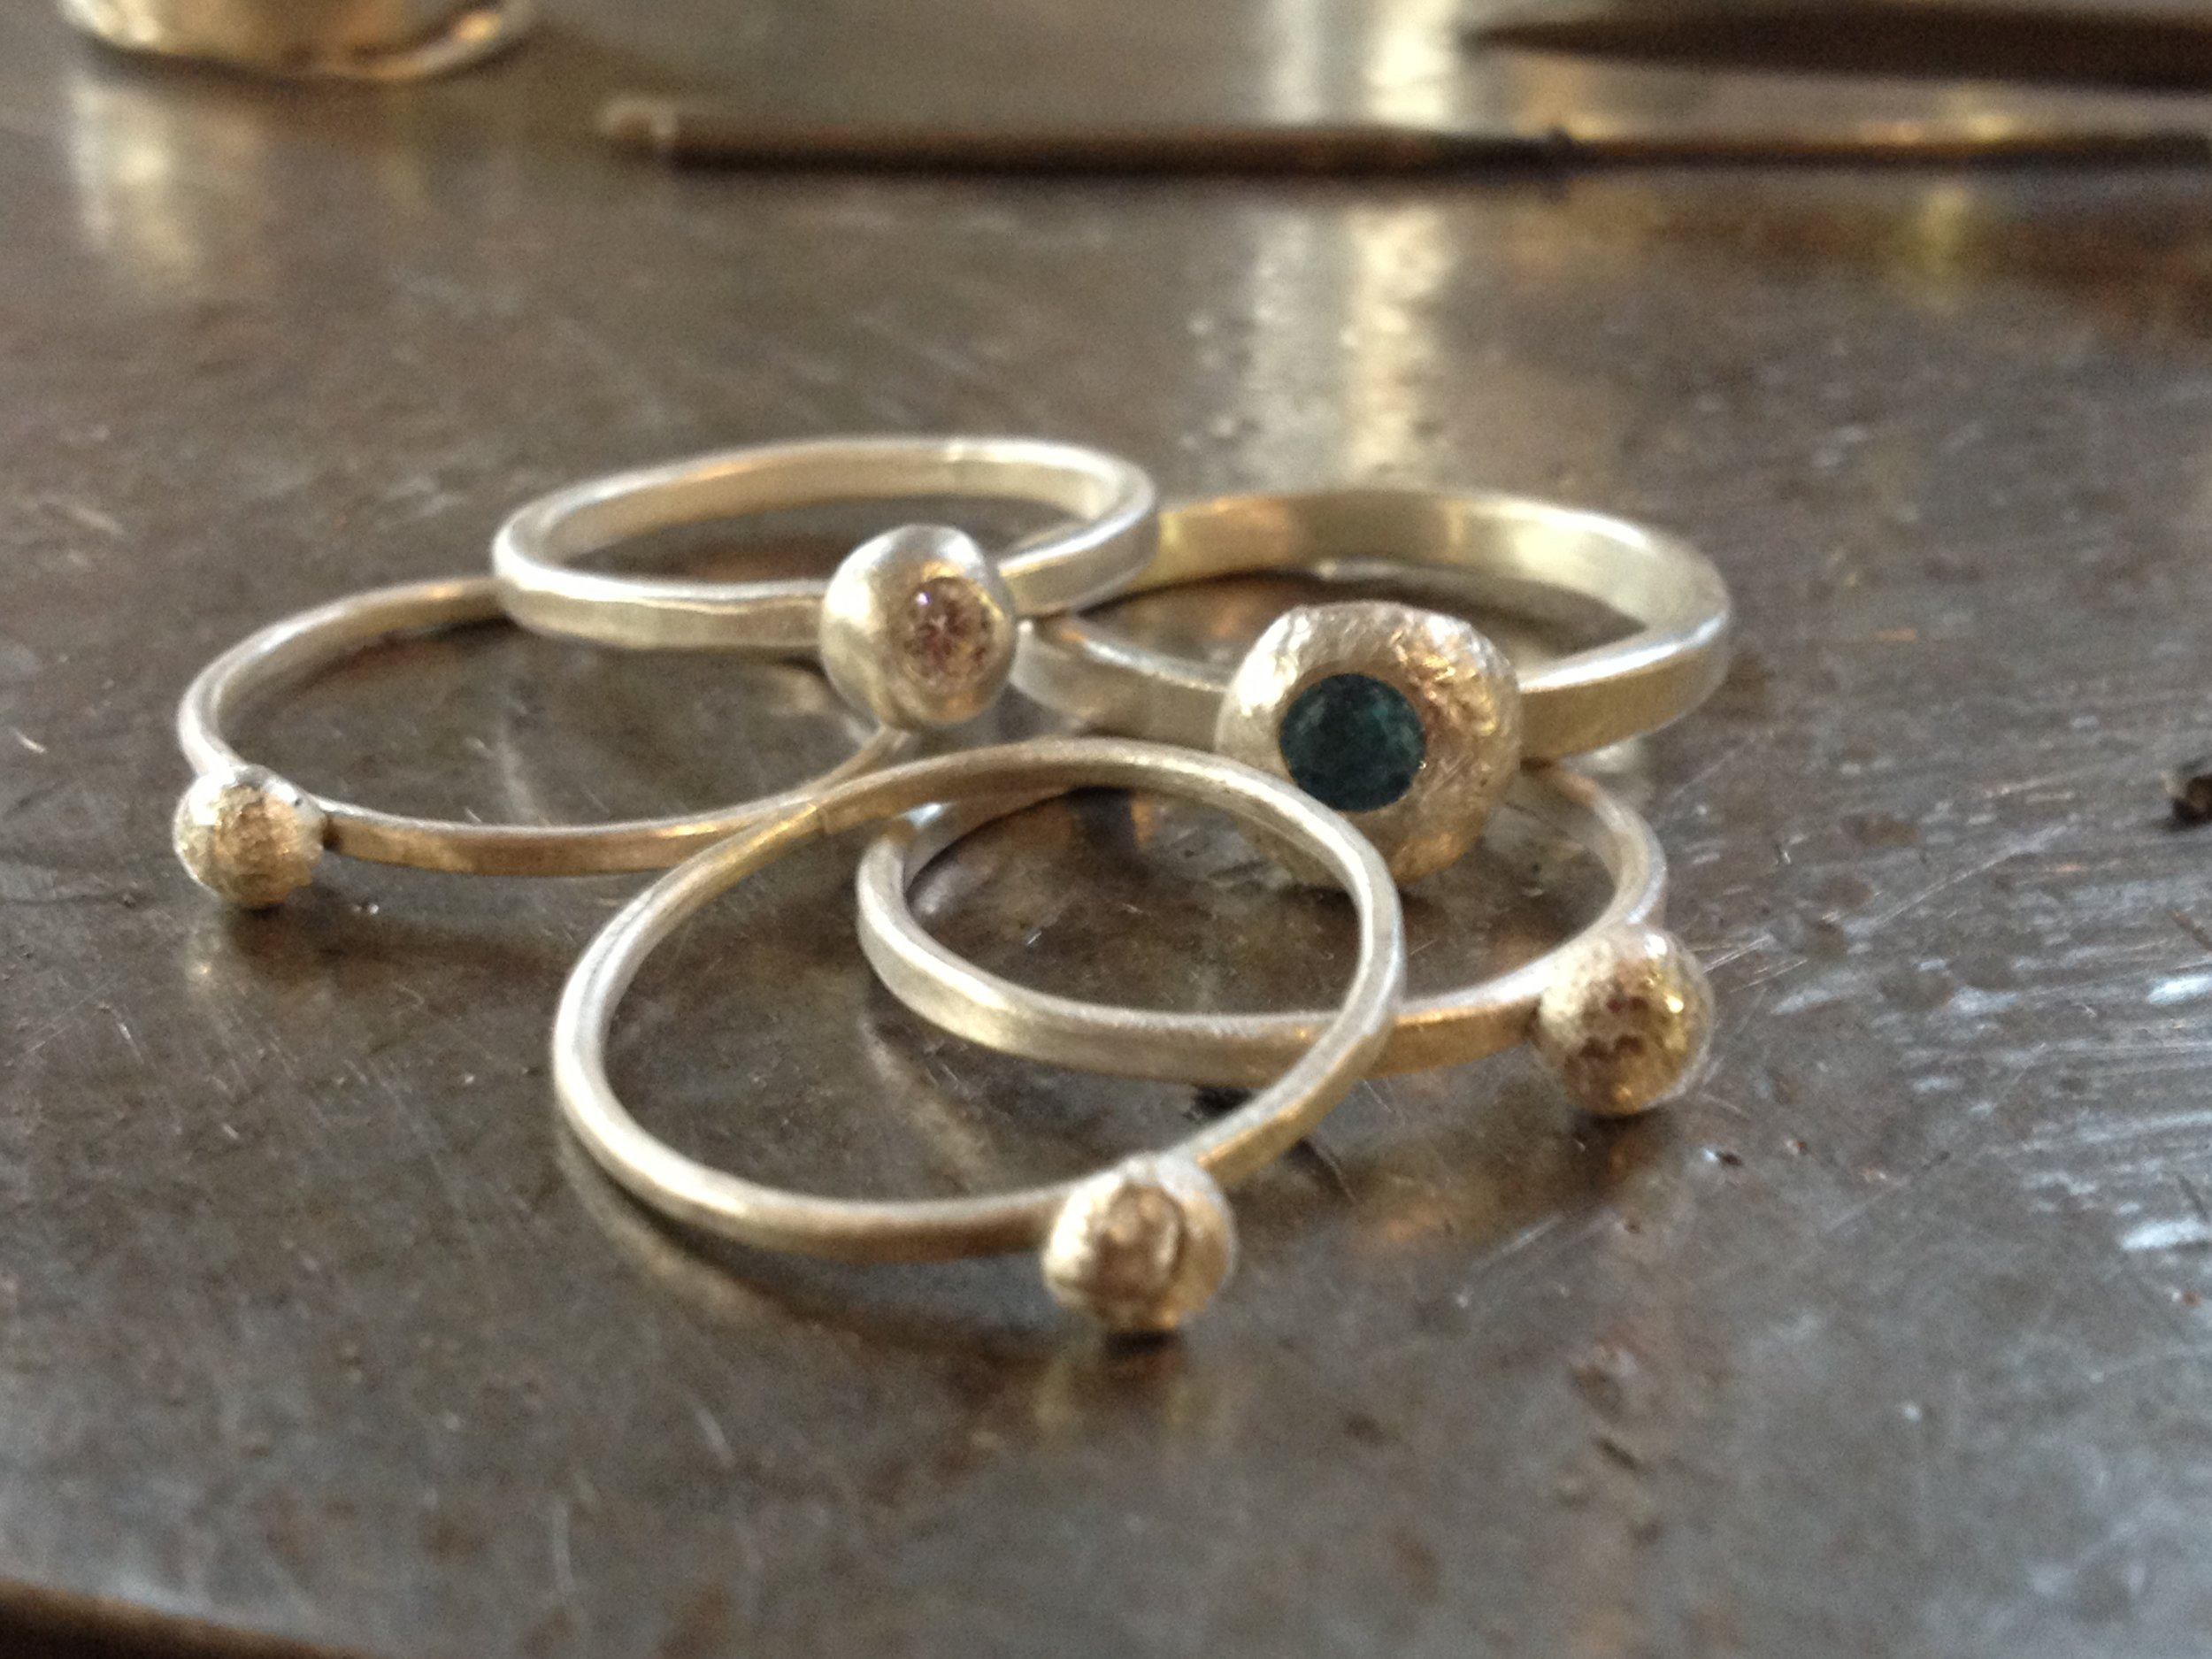 Completed stackable pebble rings